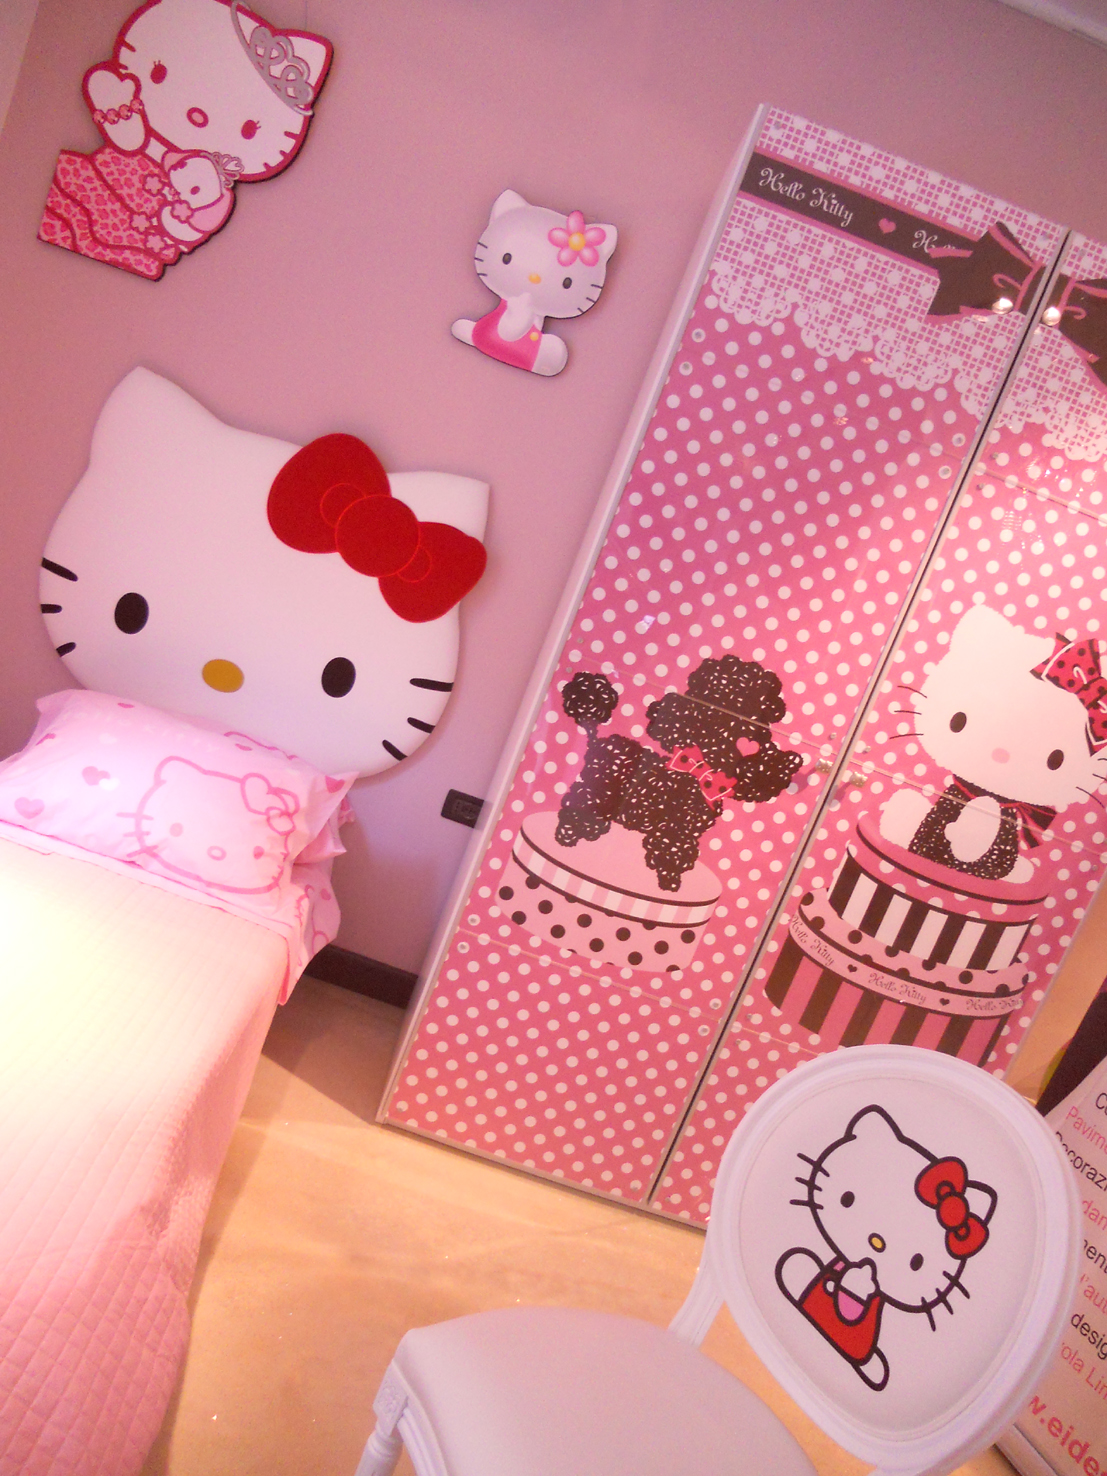 Lenzuola Di Hello Kitty.Eidesign Glamour Di Veronica Cristina Merli Fashion Blogger